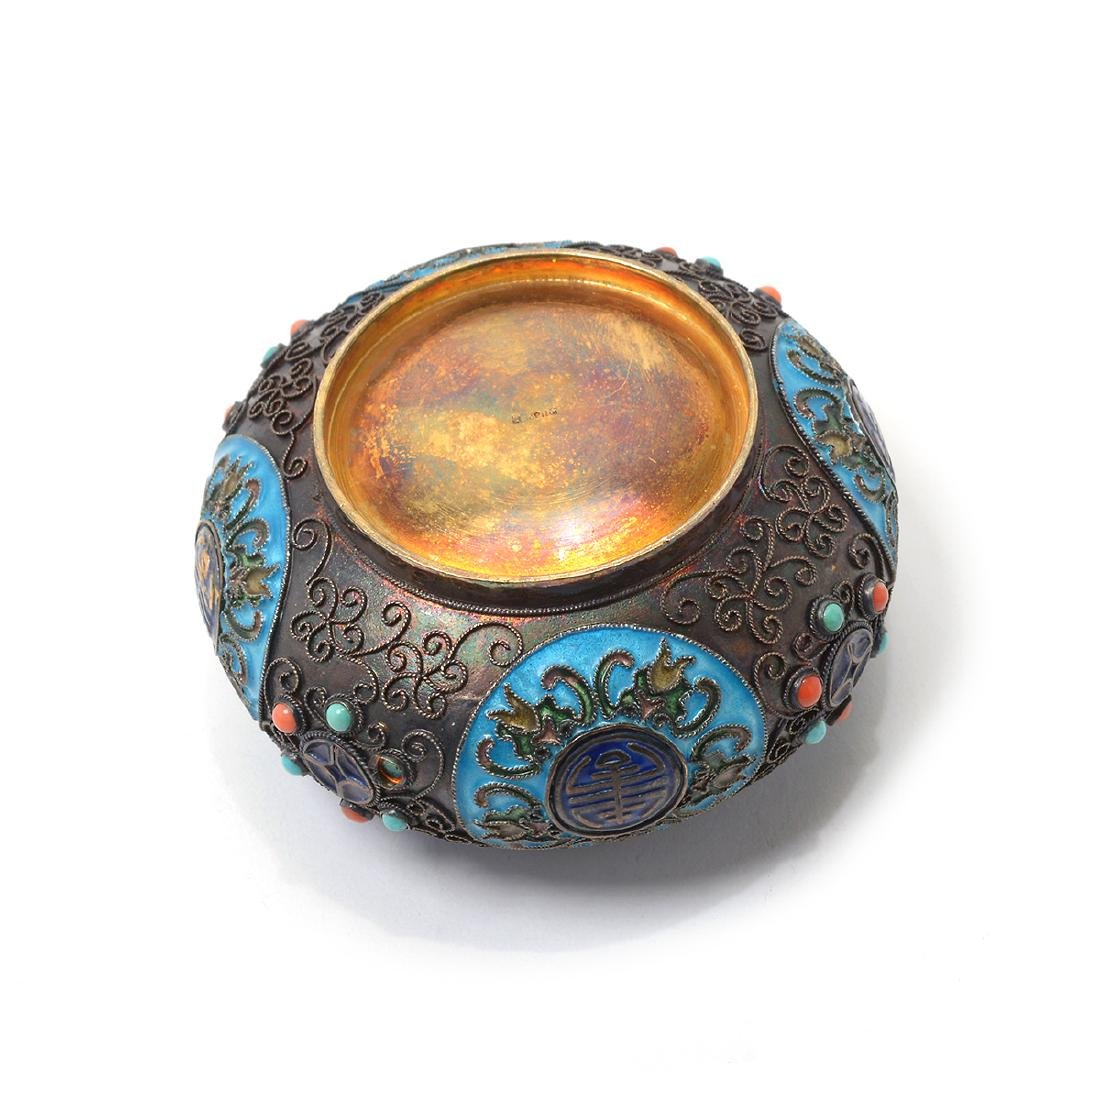 Small Enameled Silver Jar w/ Coral & Turquoise Inlay* - 6